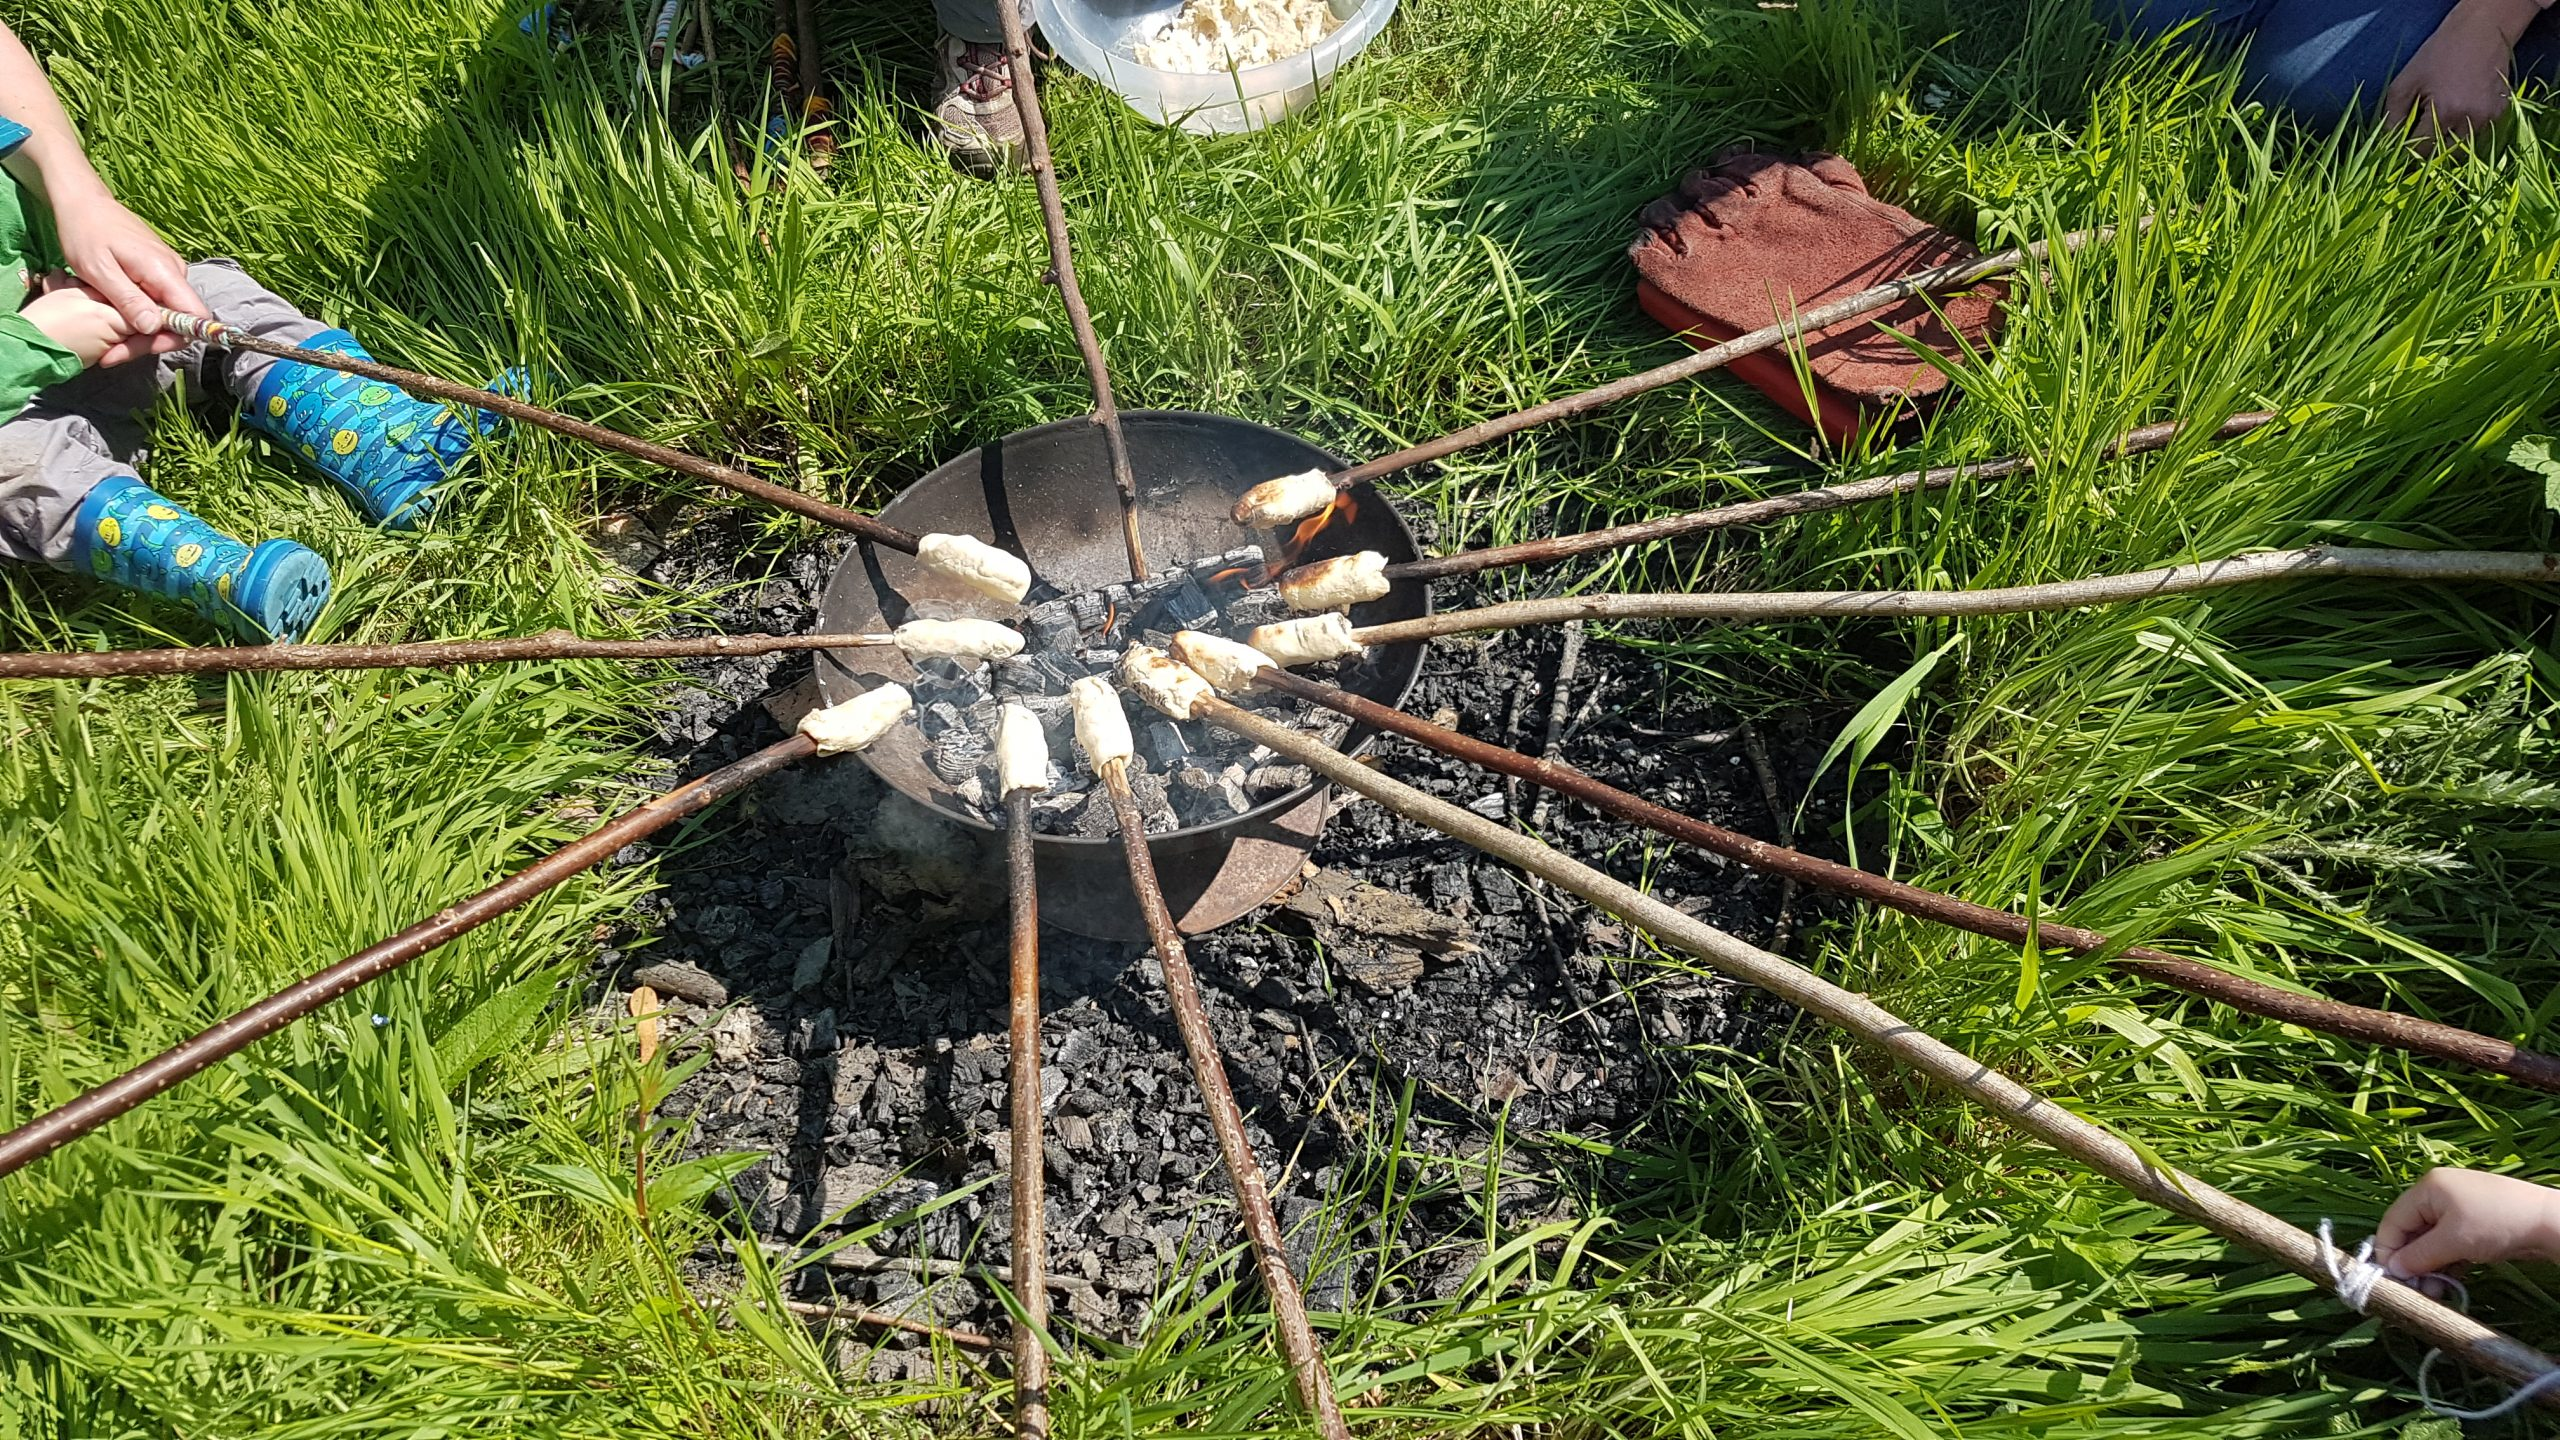 Stick bread at Forest school